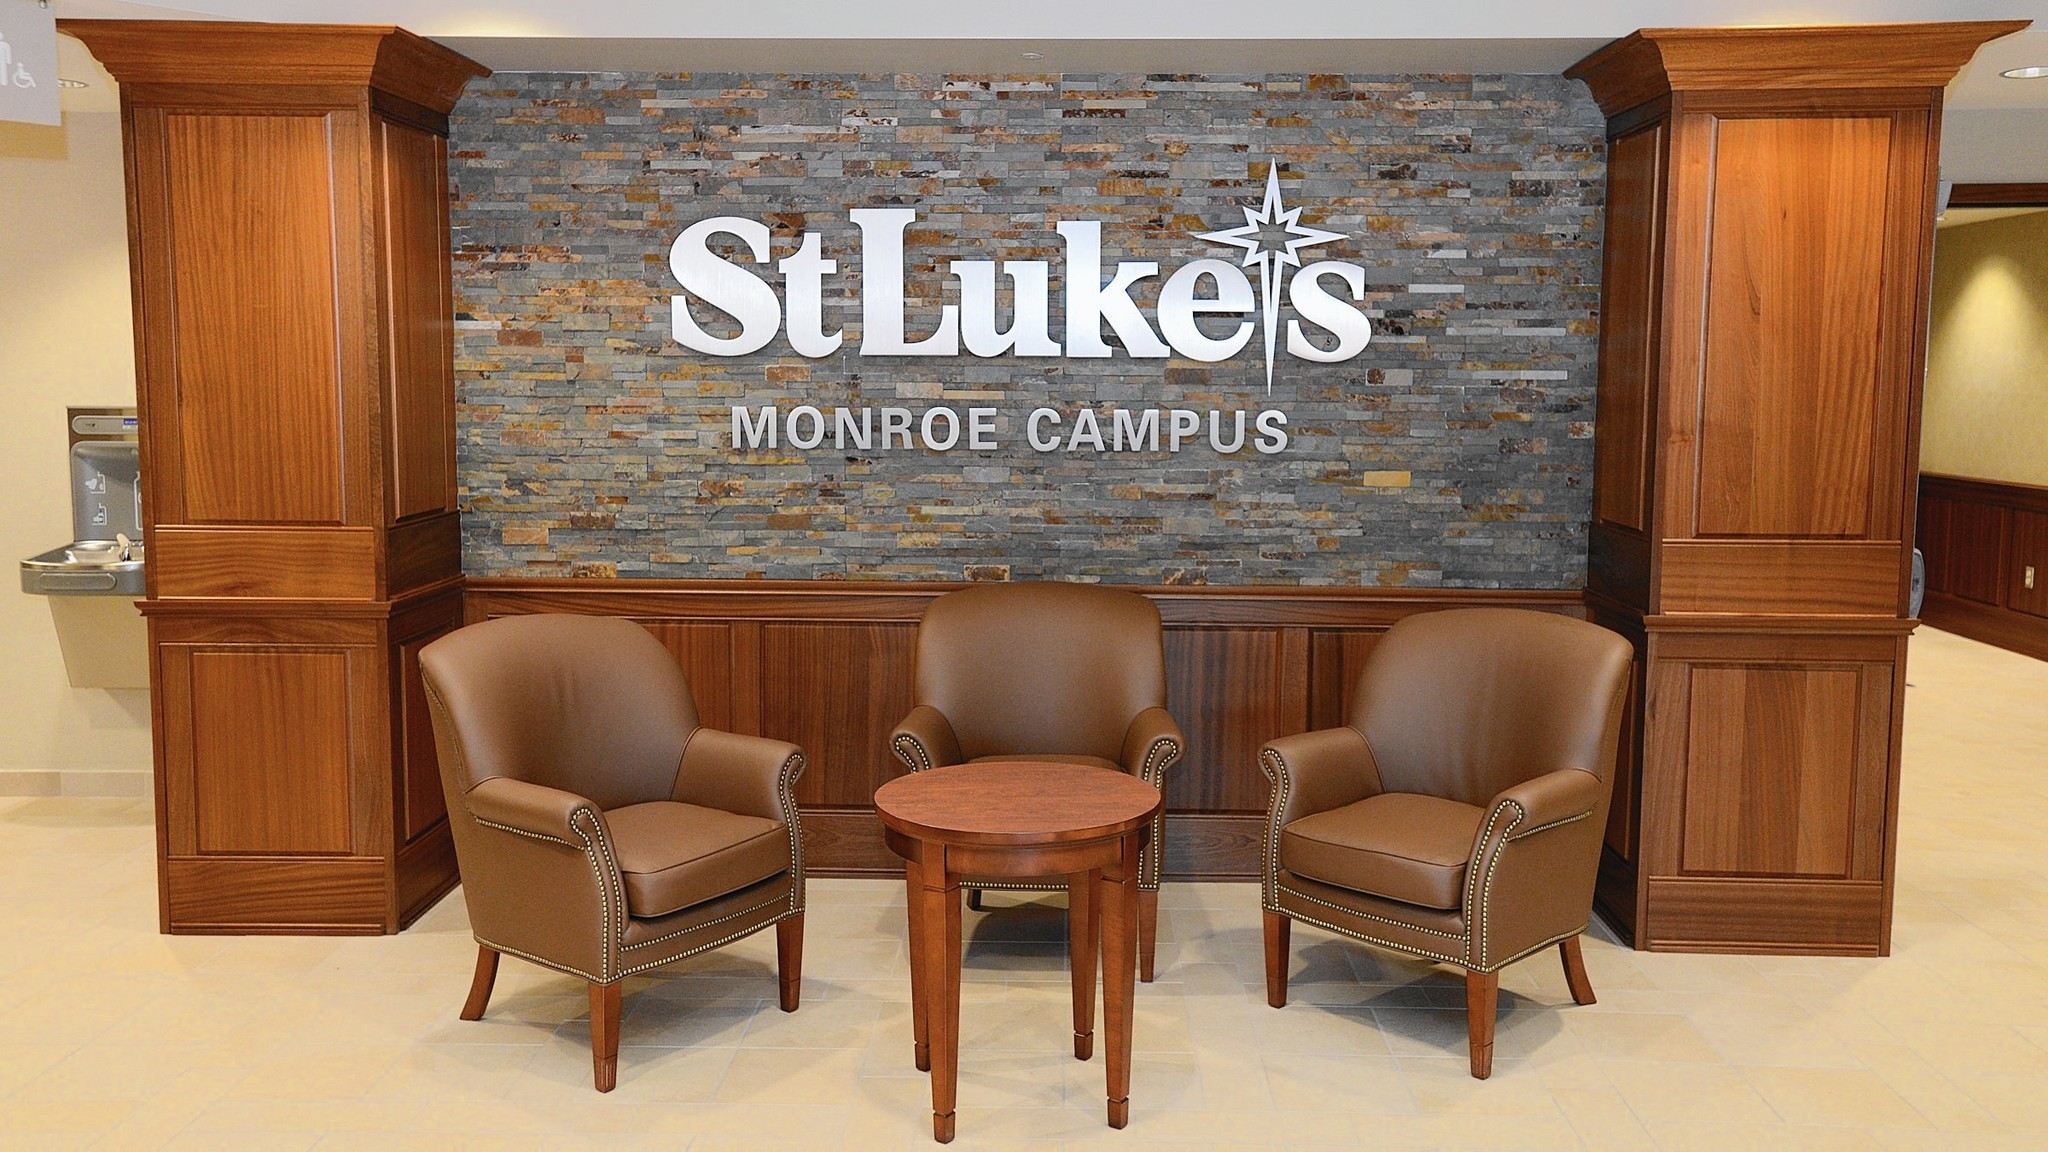 New St Lukes hospital opens in the Poconos The Morning Call